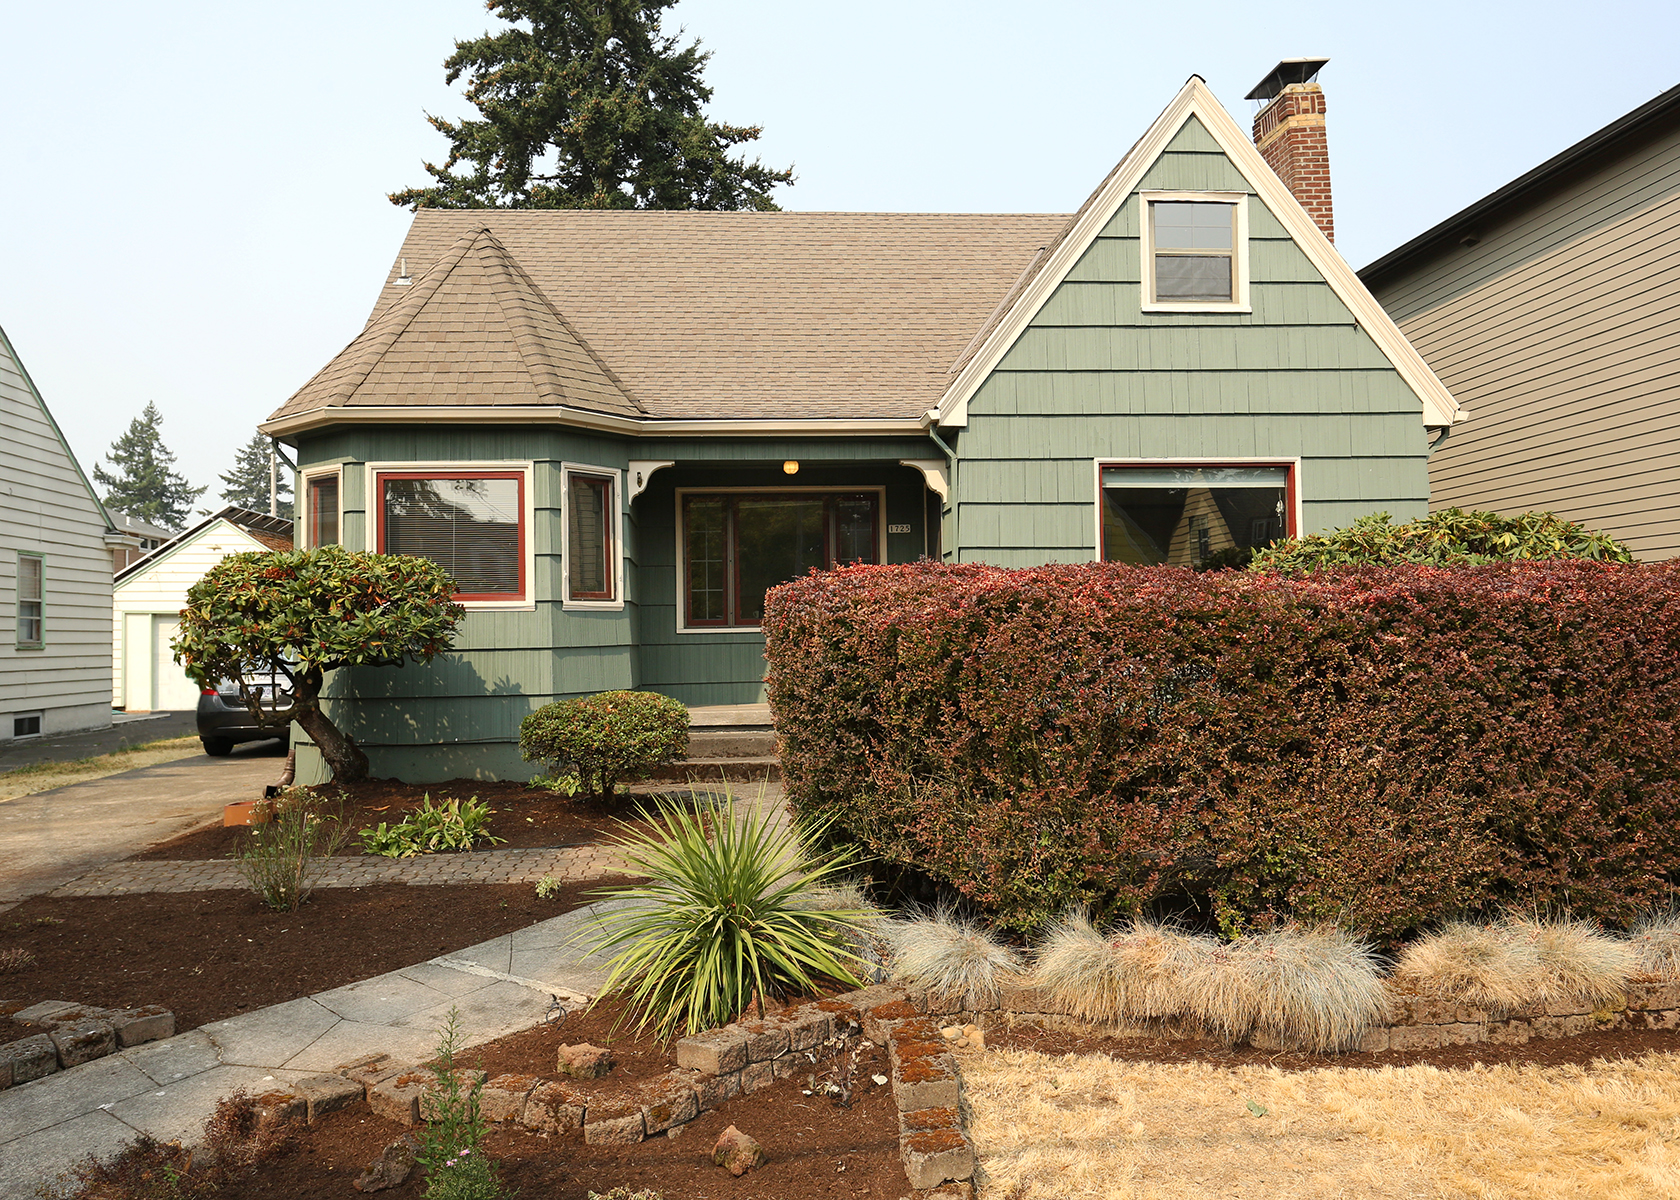 1725 NE 59th Ave  Spacious 1932 English Tudor in Rose City  $539,000 - SOLD